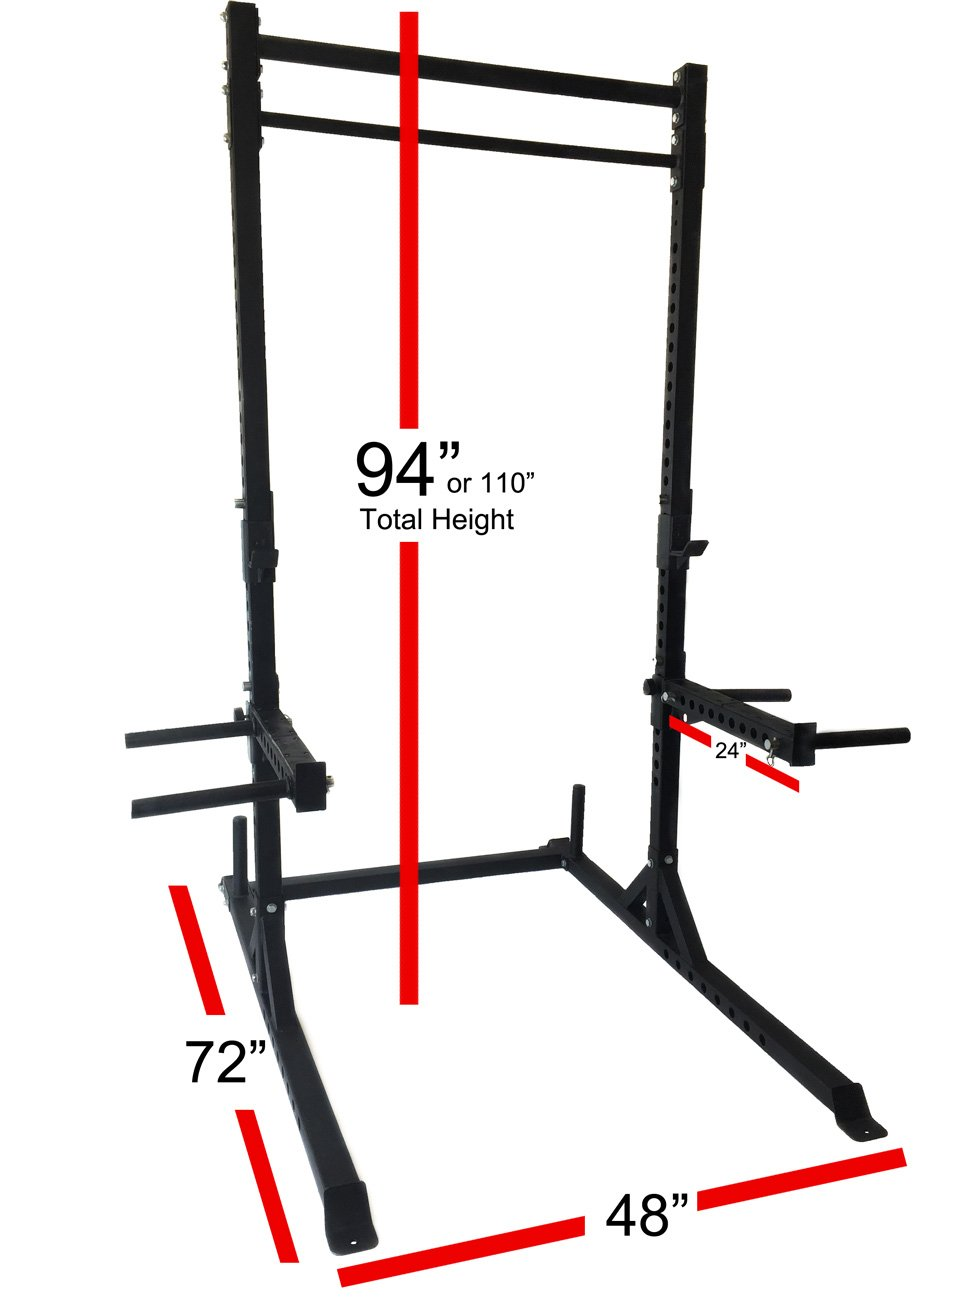 Rep Squat Rack with Pull Up Bar - 1,000 lb Capacity